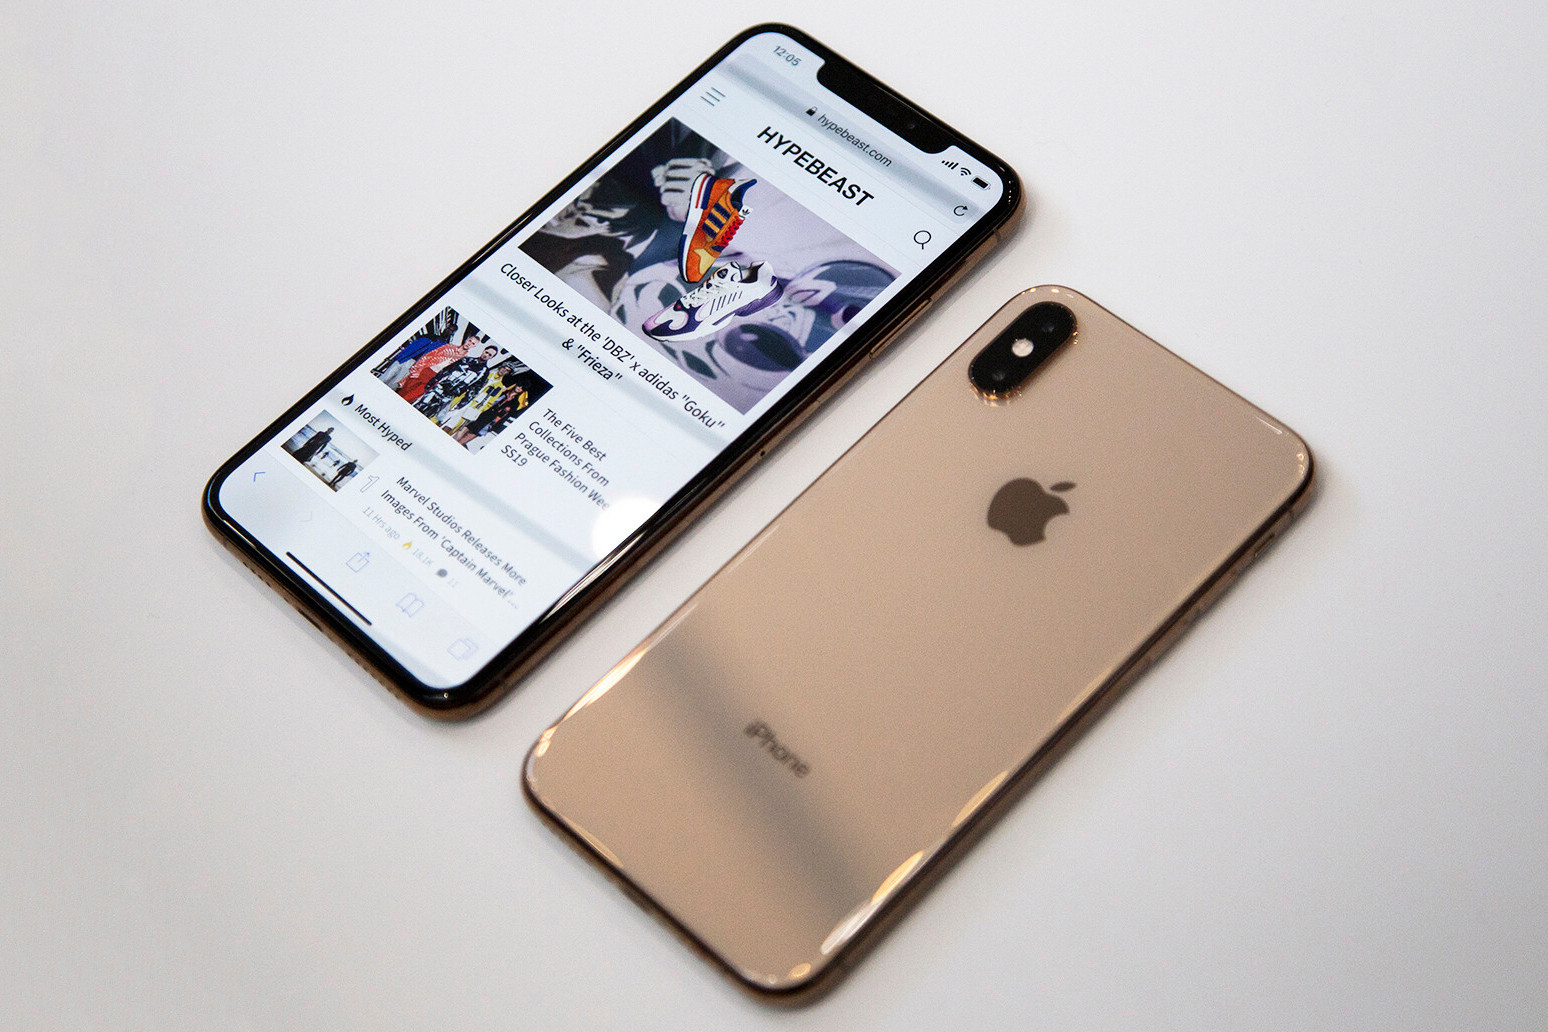 Apple iPhone Tim Cook Industry Insiders Experts Reactions Views Thoughts the verge engadget pc mag opinion roundtable price worth it xr xs max